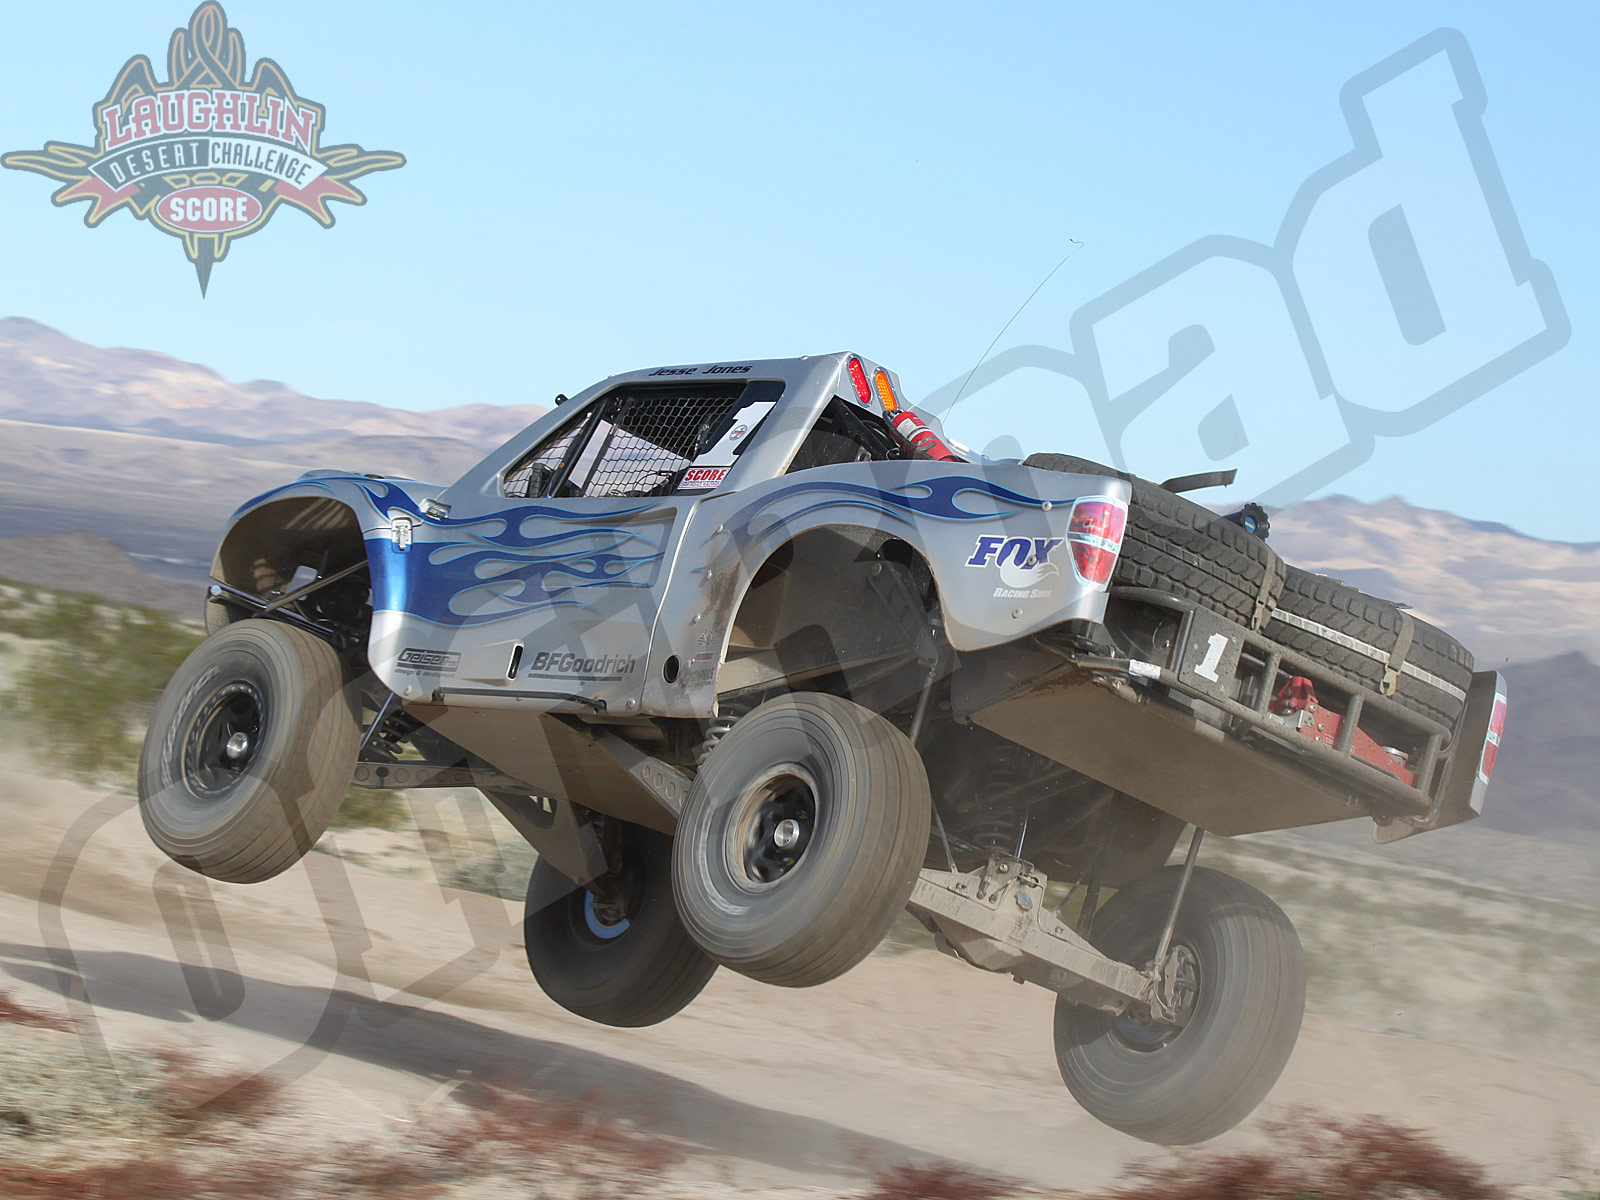 030311or 6735+2011 score laughlin desert challenge+trophy trucks sunday